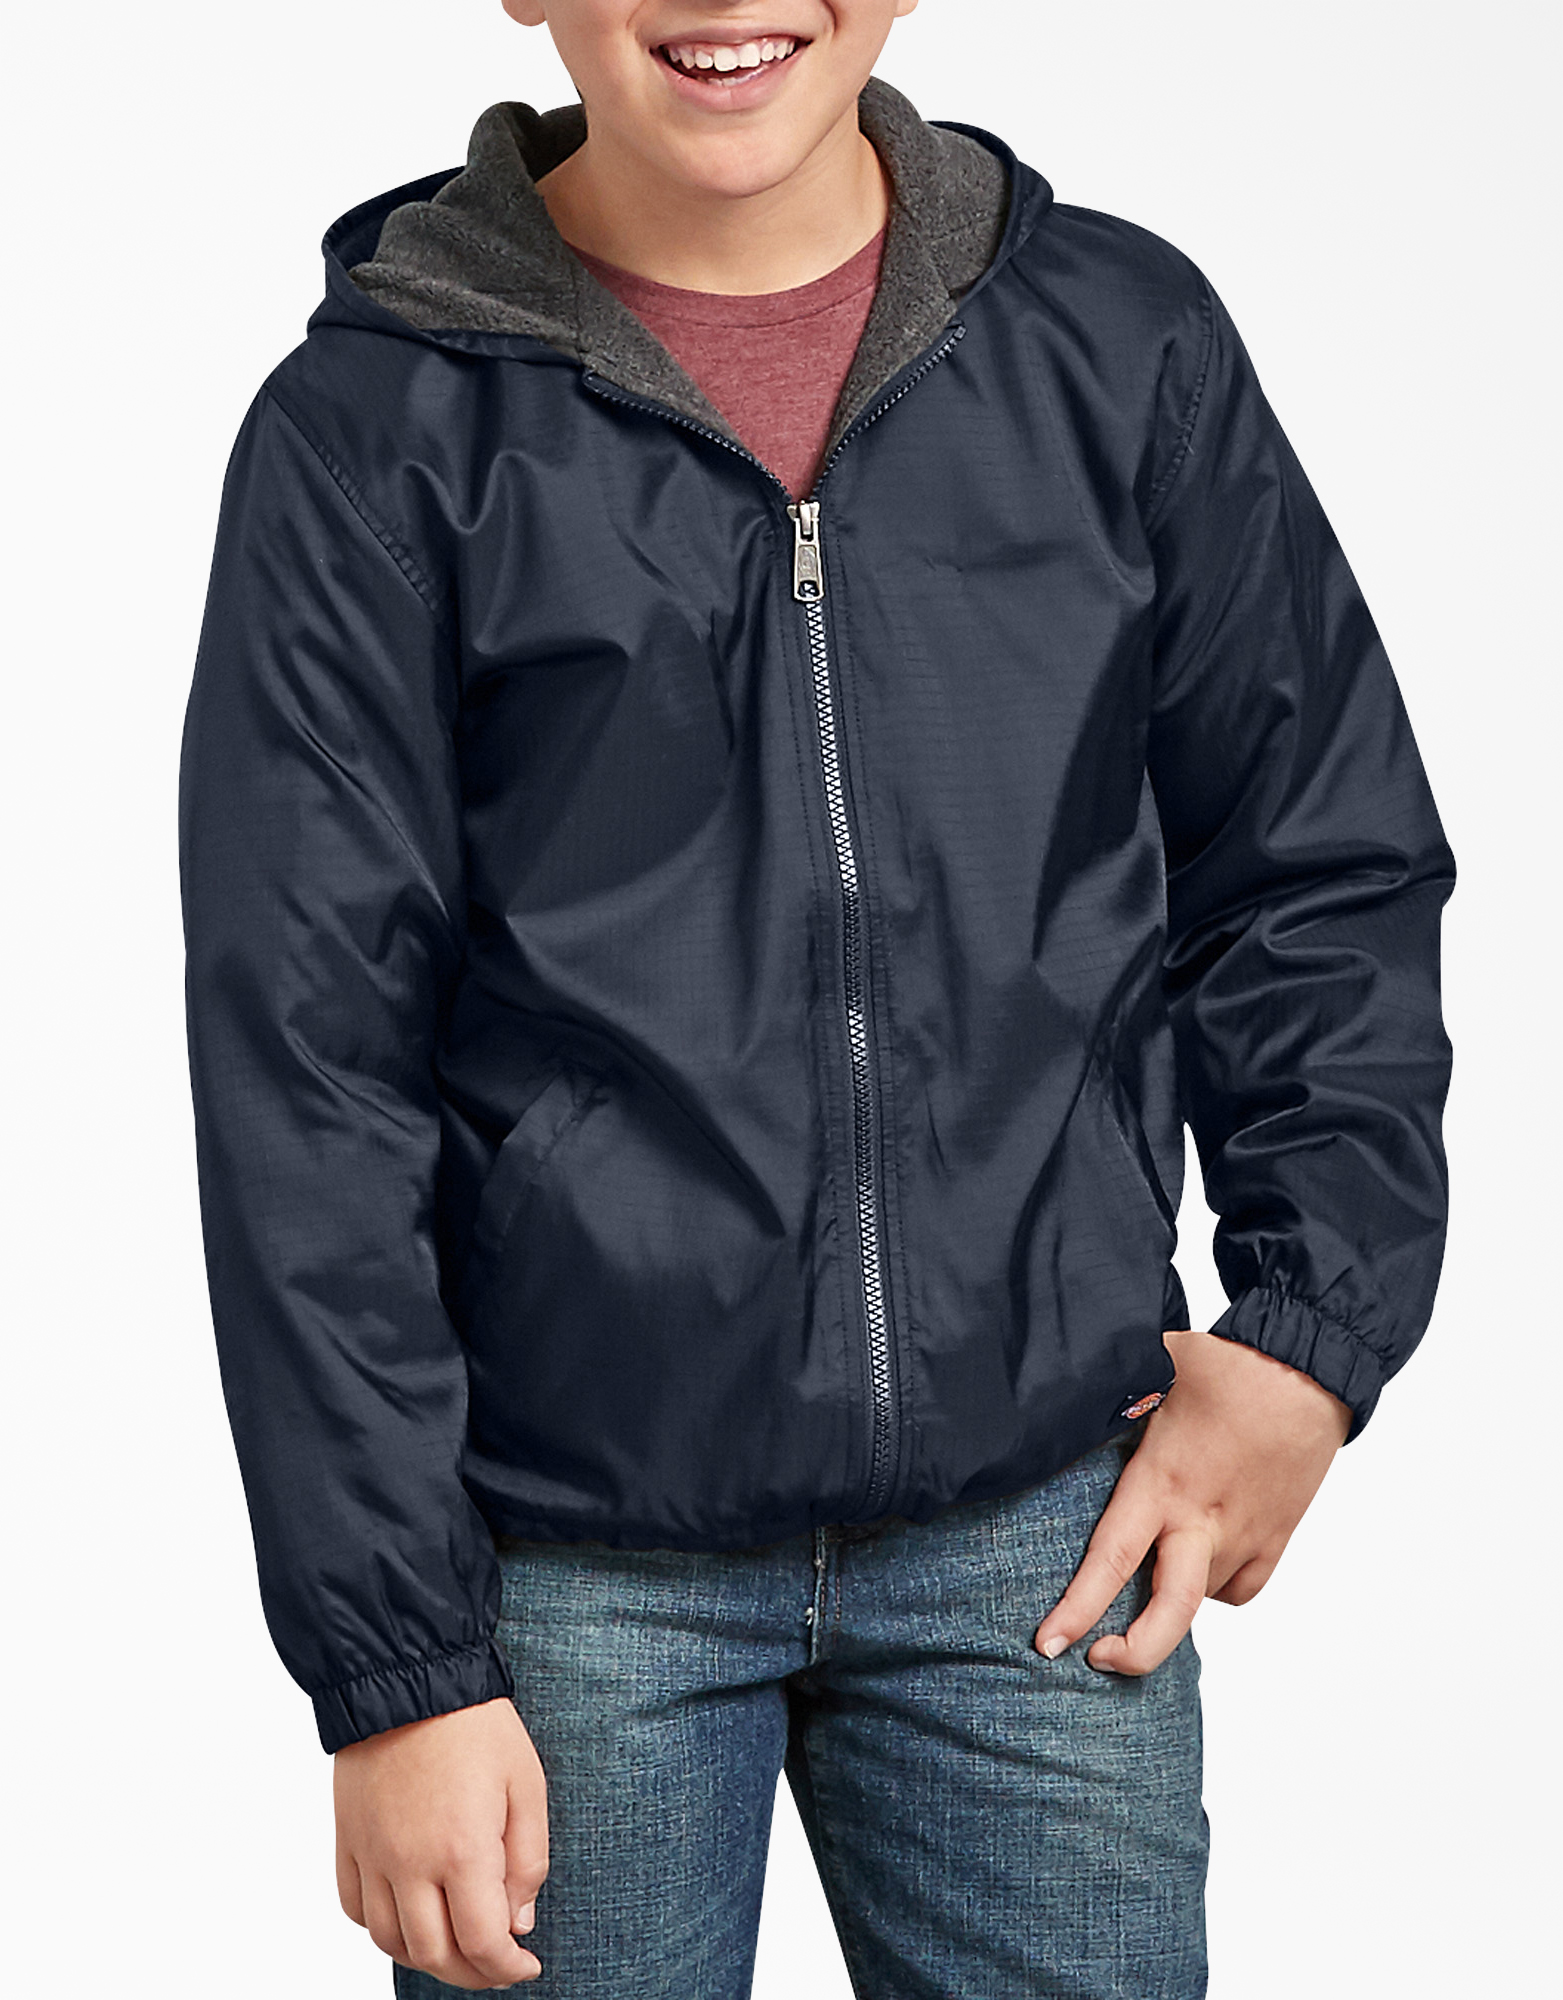 Kids' Fleece Lined Hooded Nylon Jacket - Dark Navy (DN)